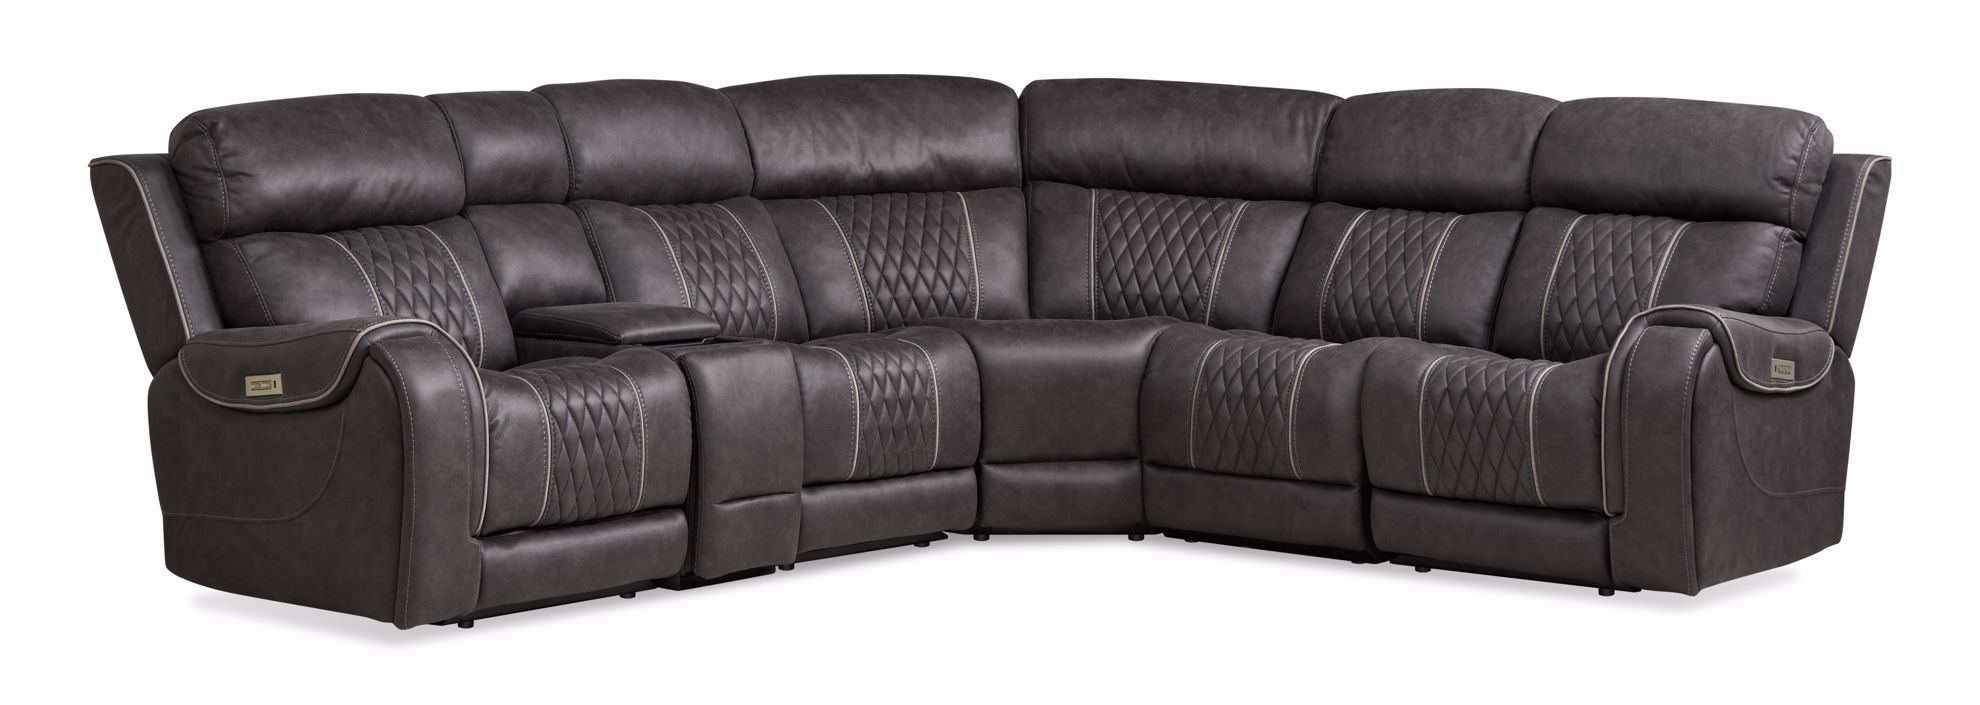 Picture of Bandera Grey 6-Piece Sectional